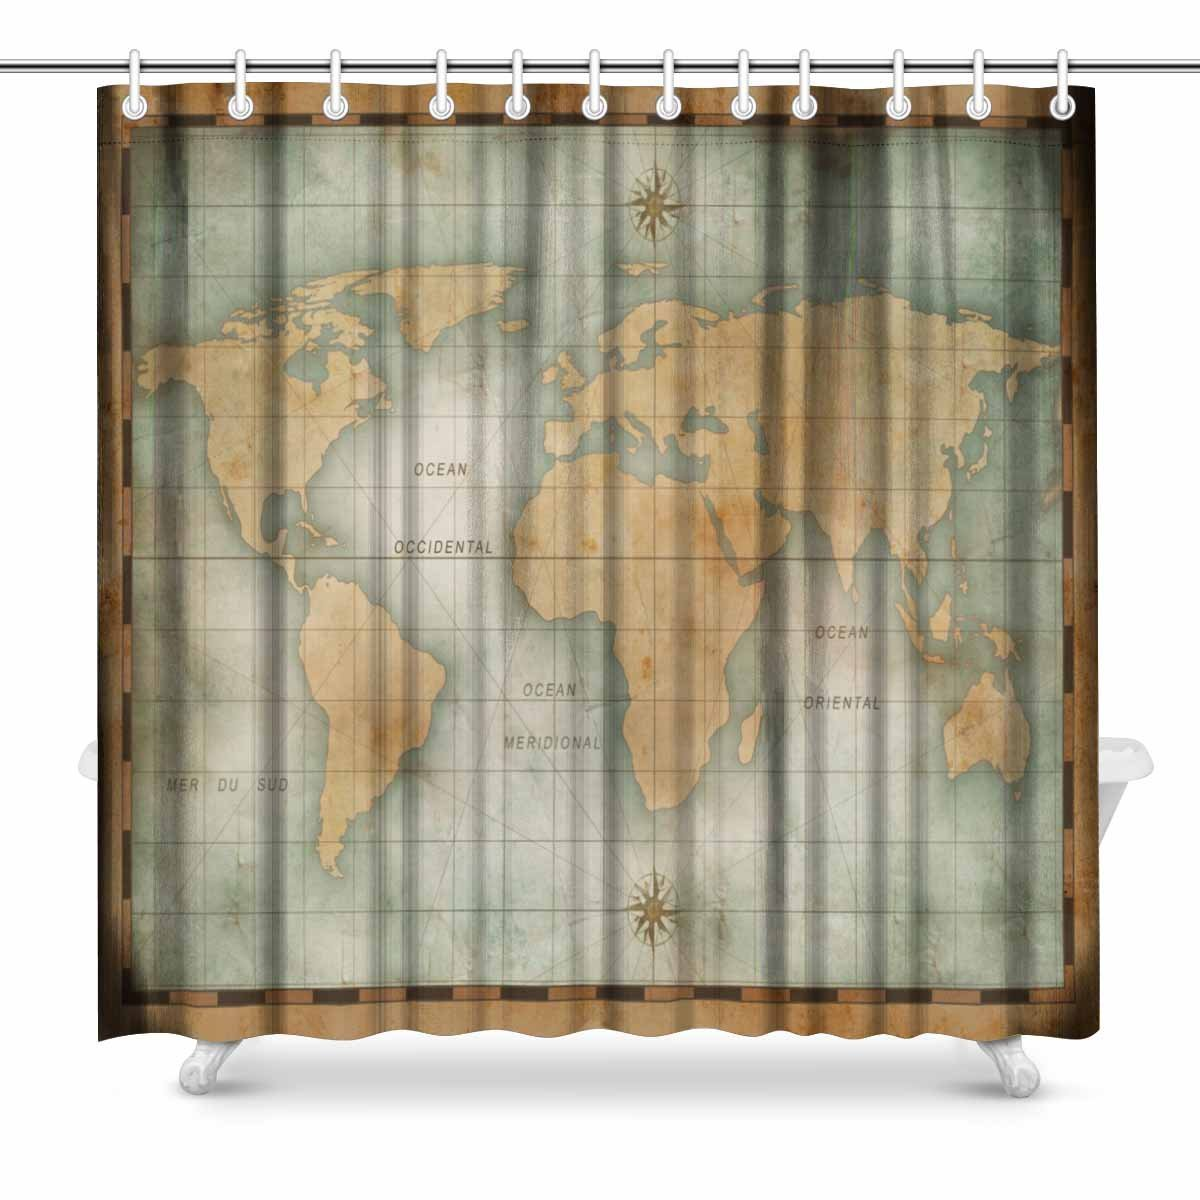 Old World Bathroom Accessories: Aplysia Old Nautical World Map Country House Image